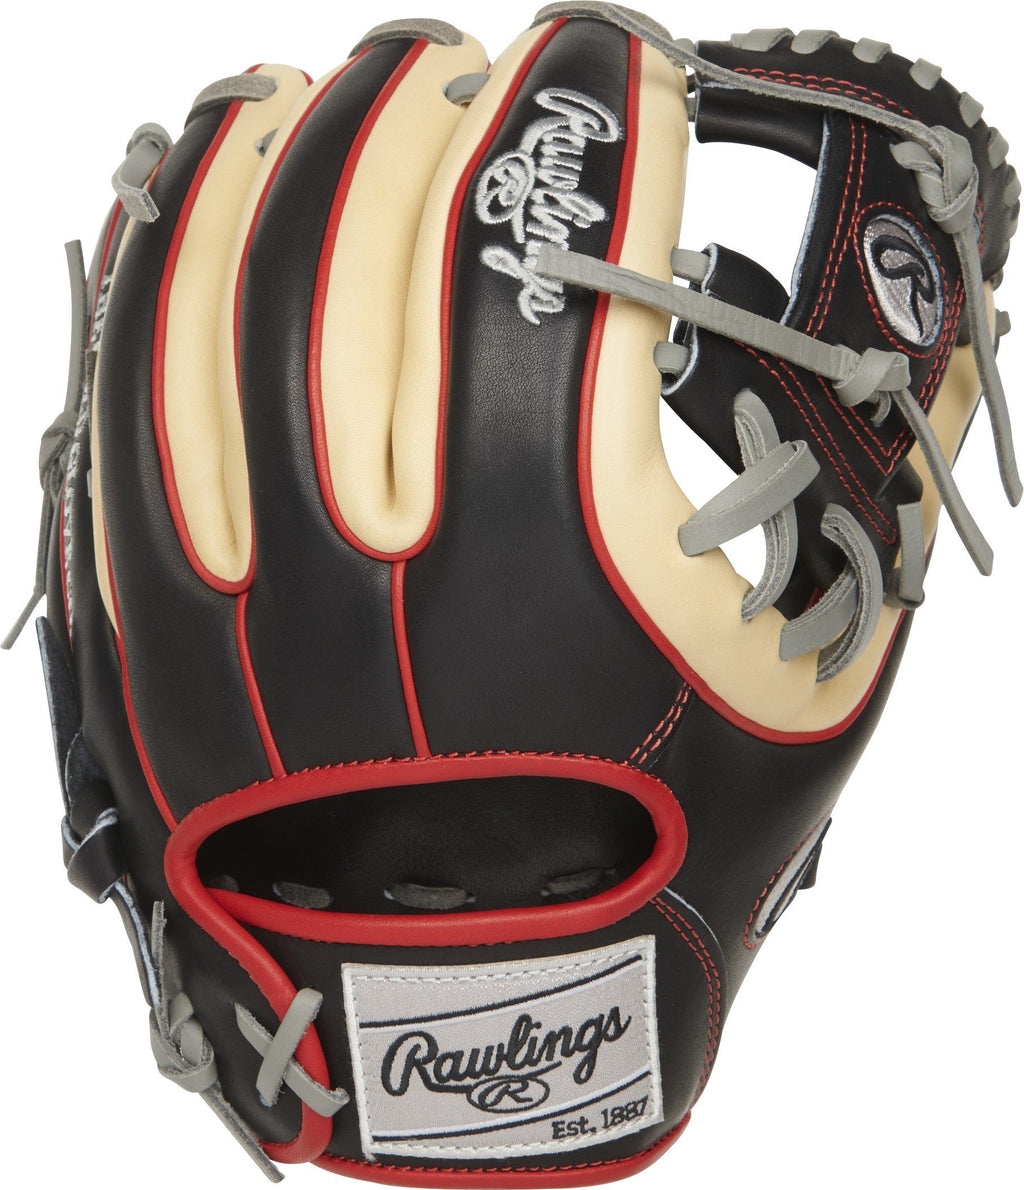 "Rawlings Heart of the Hide R2G 11.5"" Baseball Glove: PROR314-2B at headbangersports.com"